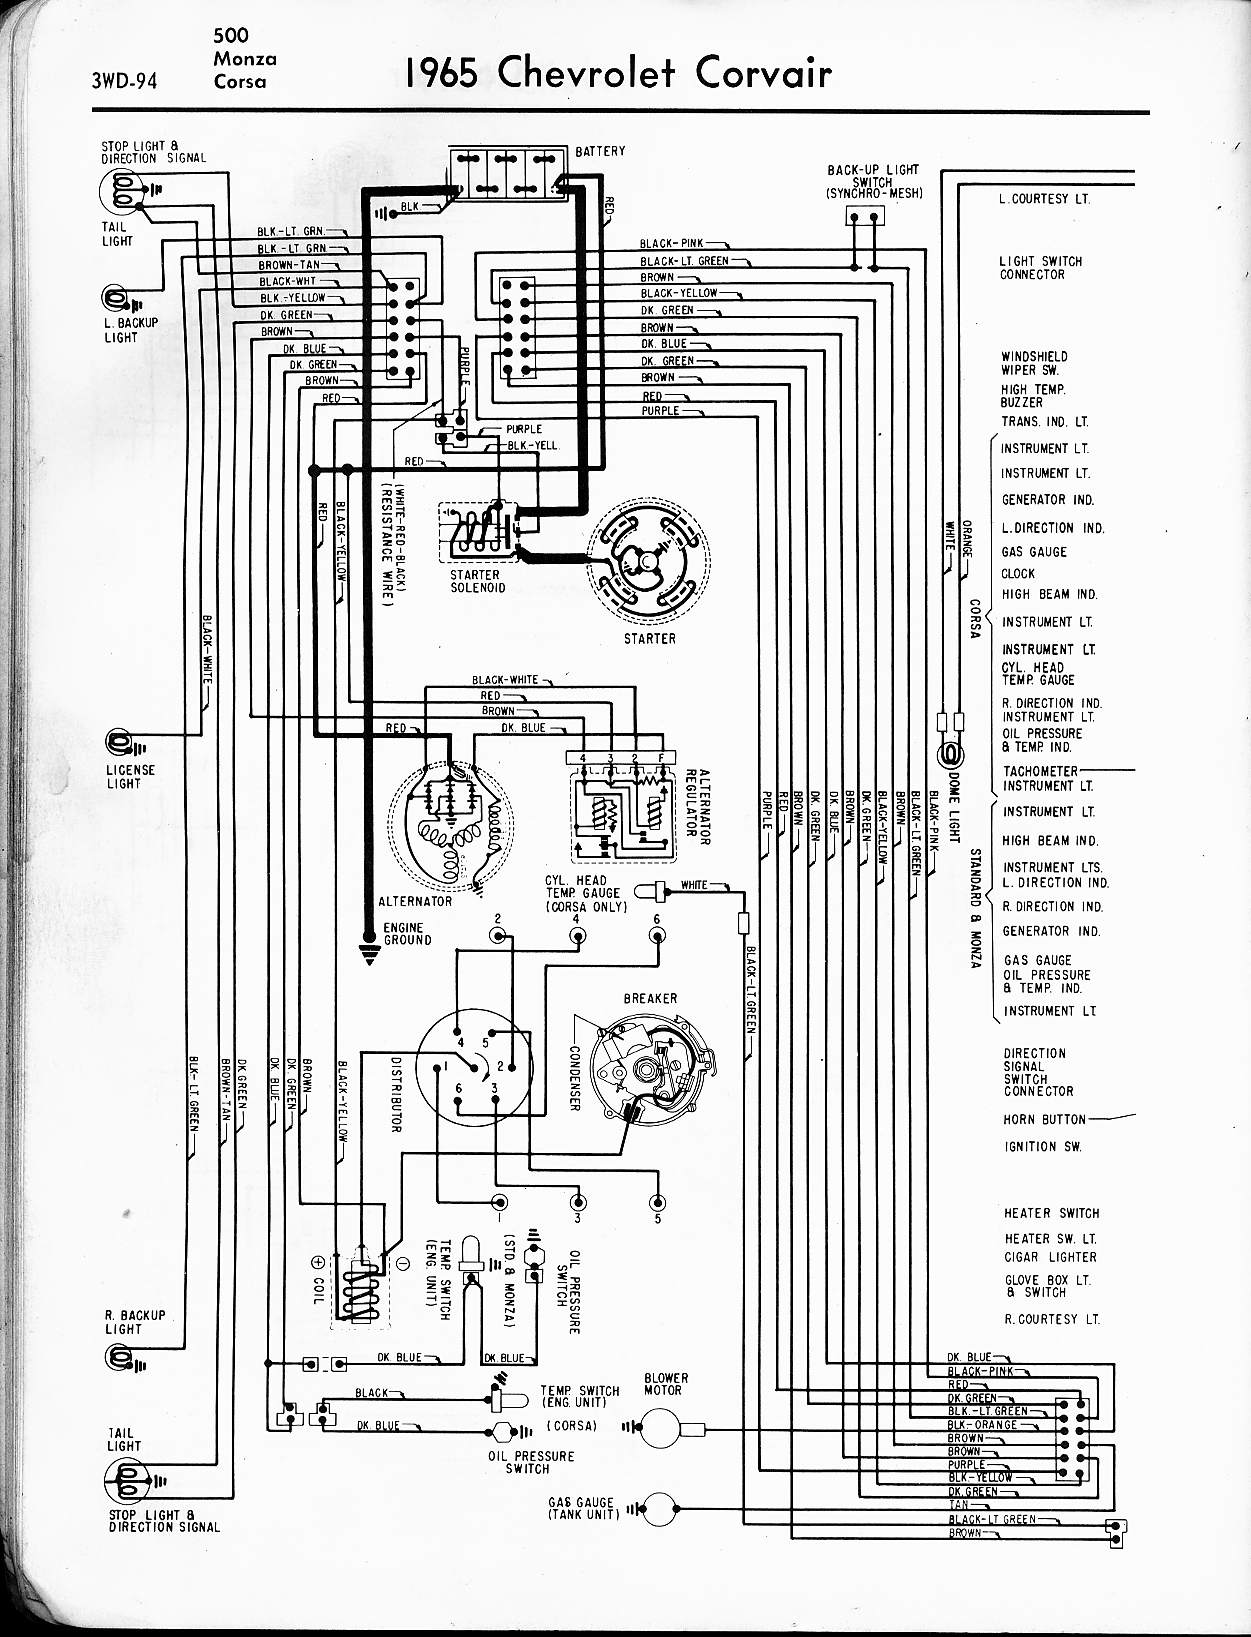 MWireChev64_3WD 094 57 65 chevy wiring diagrams 1963 corvair wiring diagram at bakdesigns.co